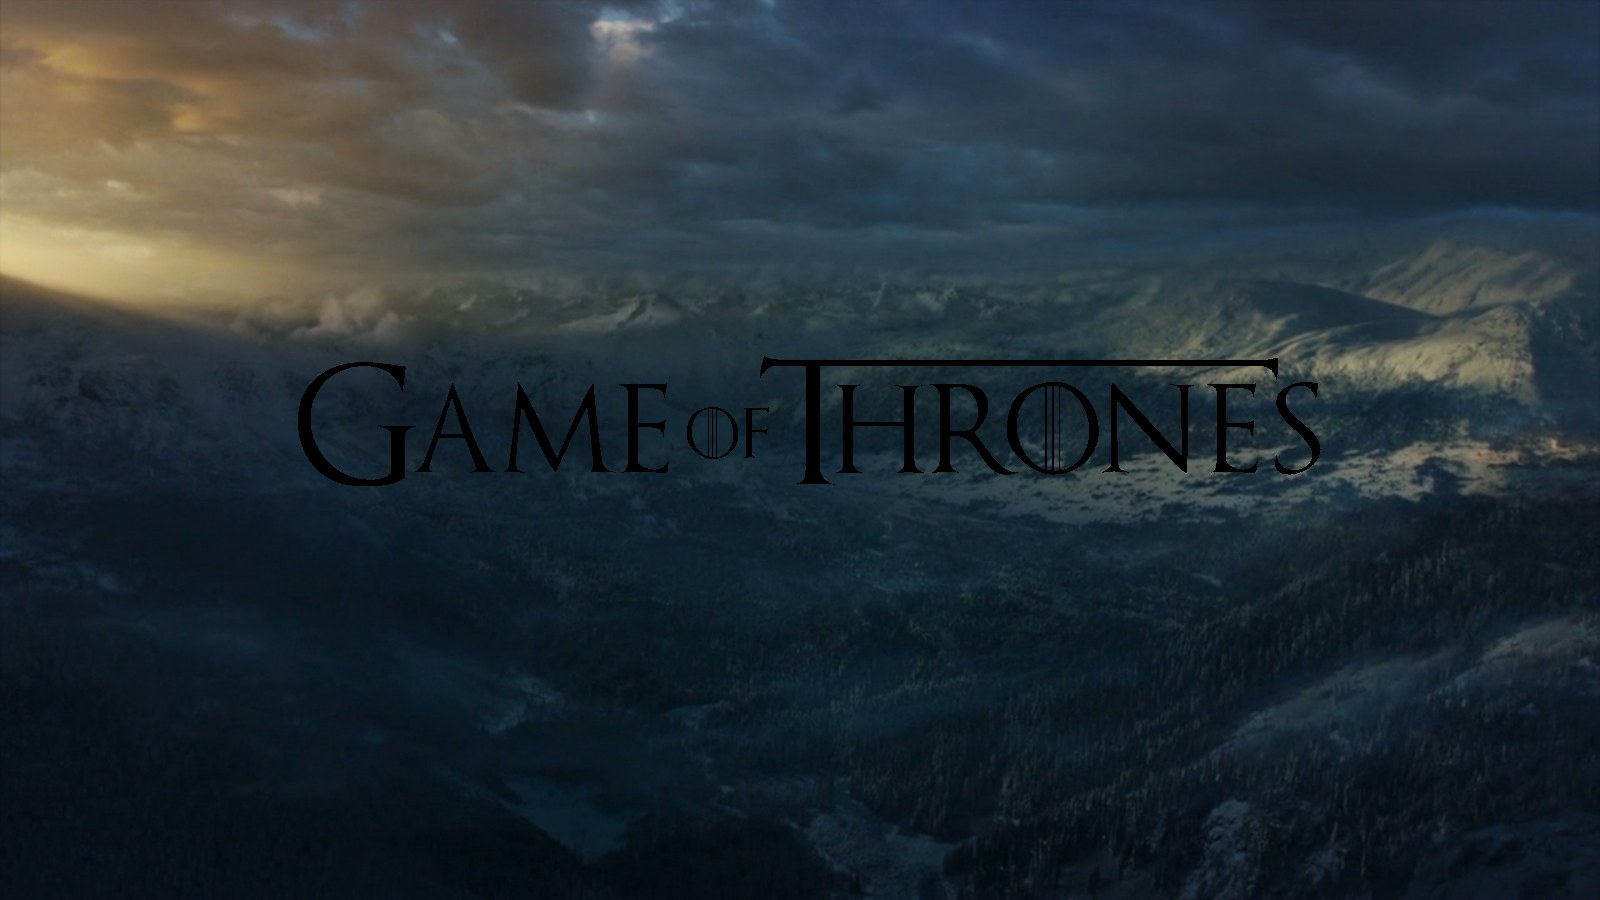 Game Of Thrones Screen Saver Hd Wallpapers Backgrounds For Game Of